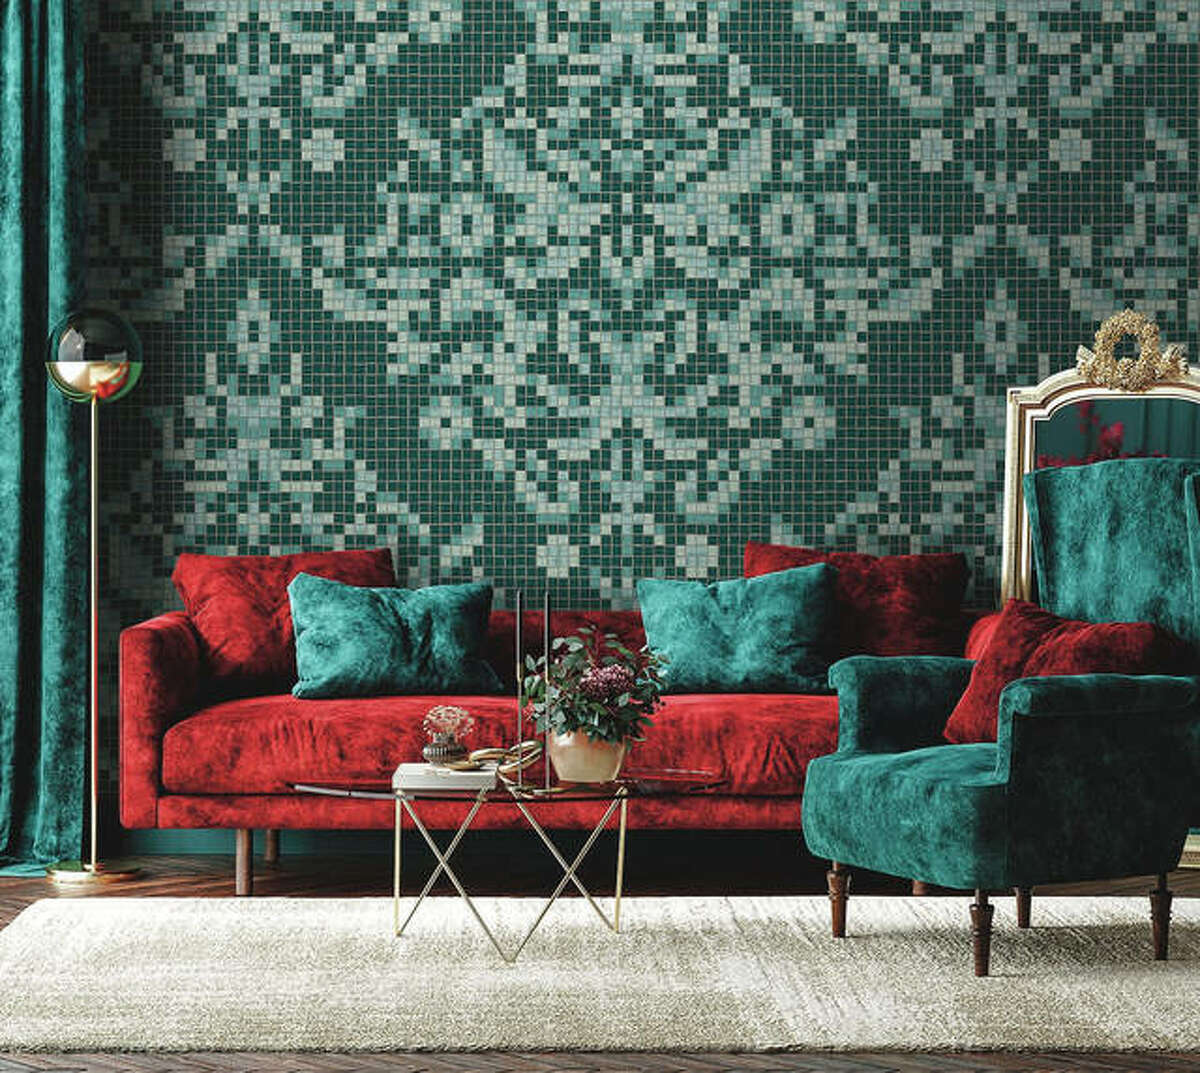 Artaic's Dramati Turquoise from the Ornamental & Damask Collection uses proprietary robotic technology and Tylist software to create custom tile mosaics and preconceived design collections.